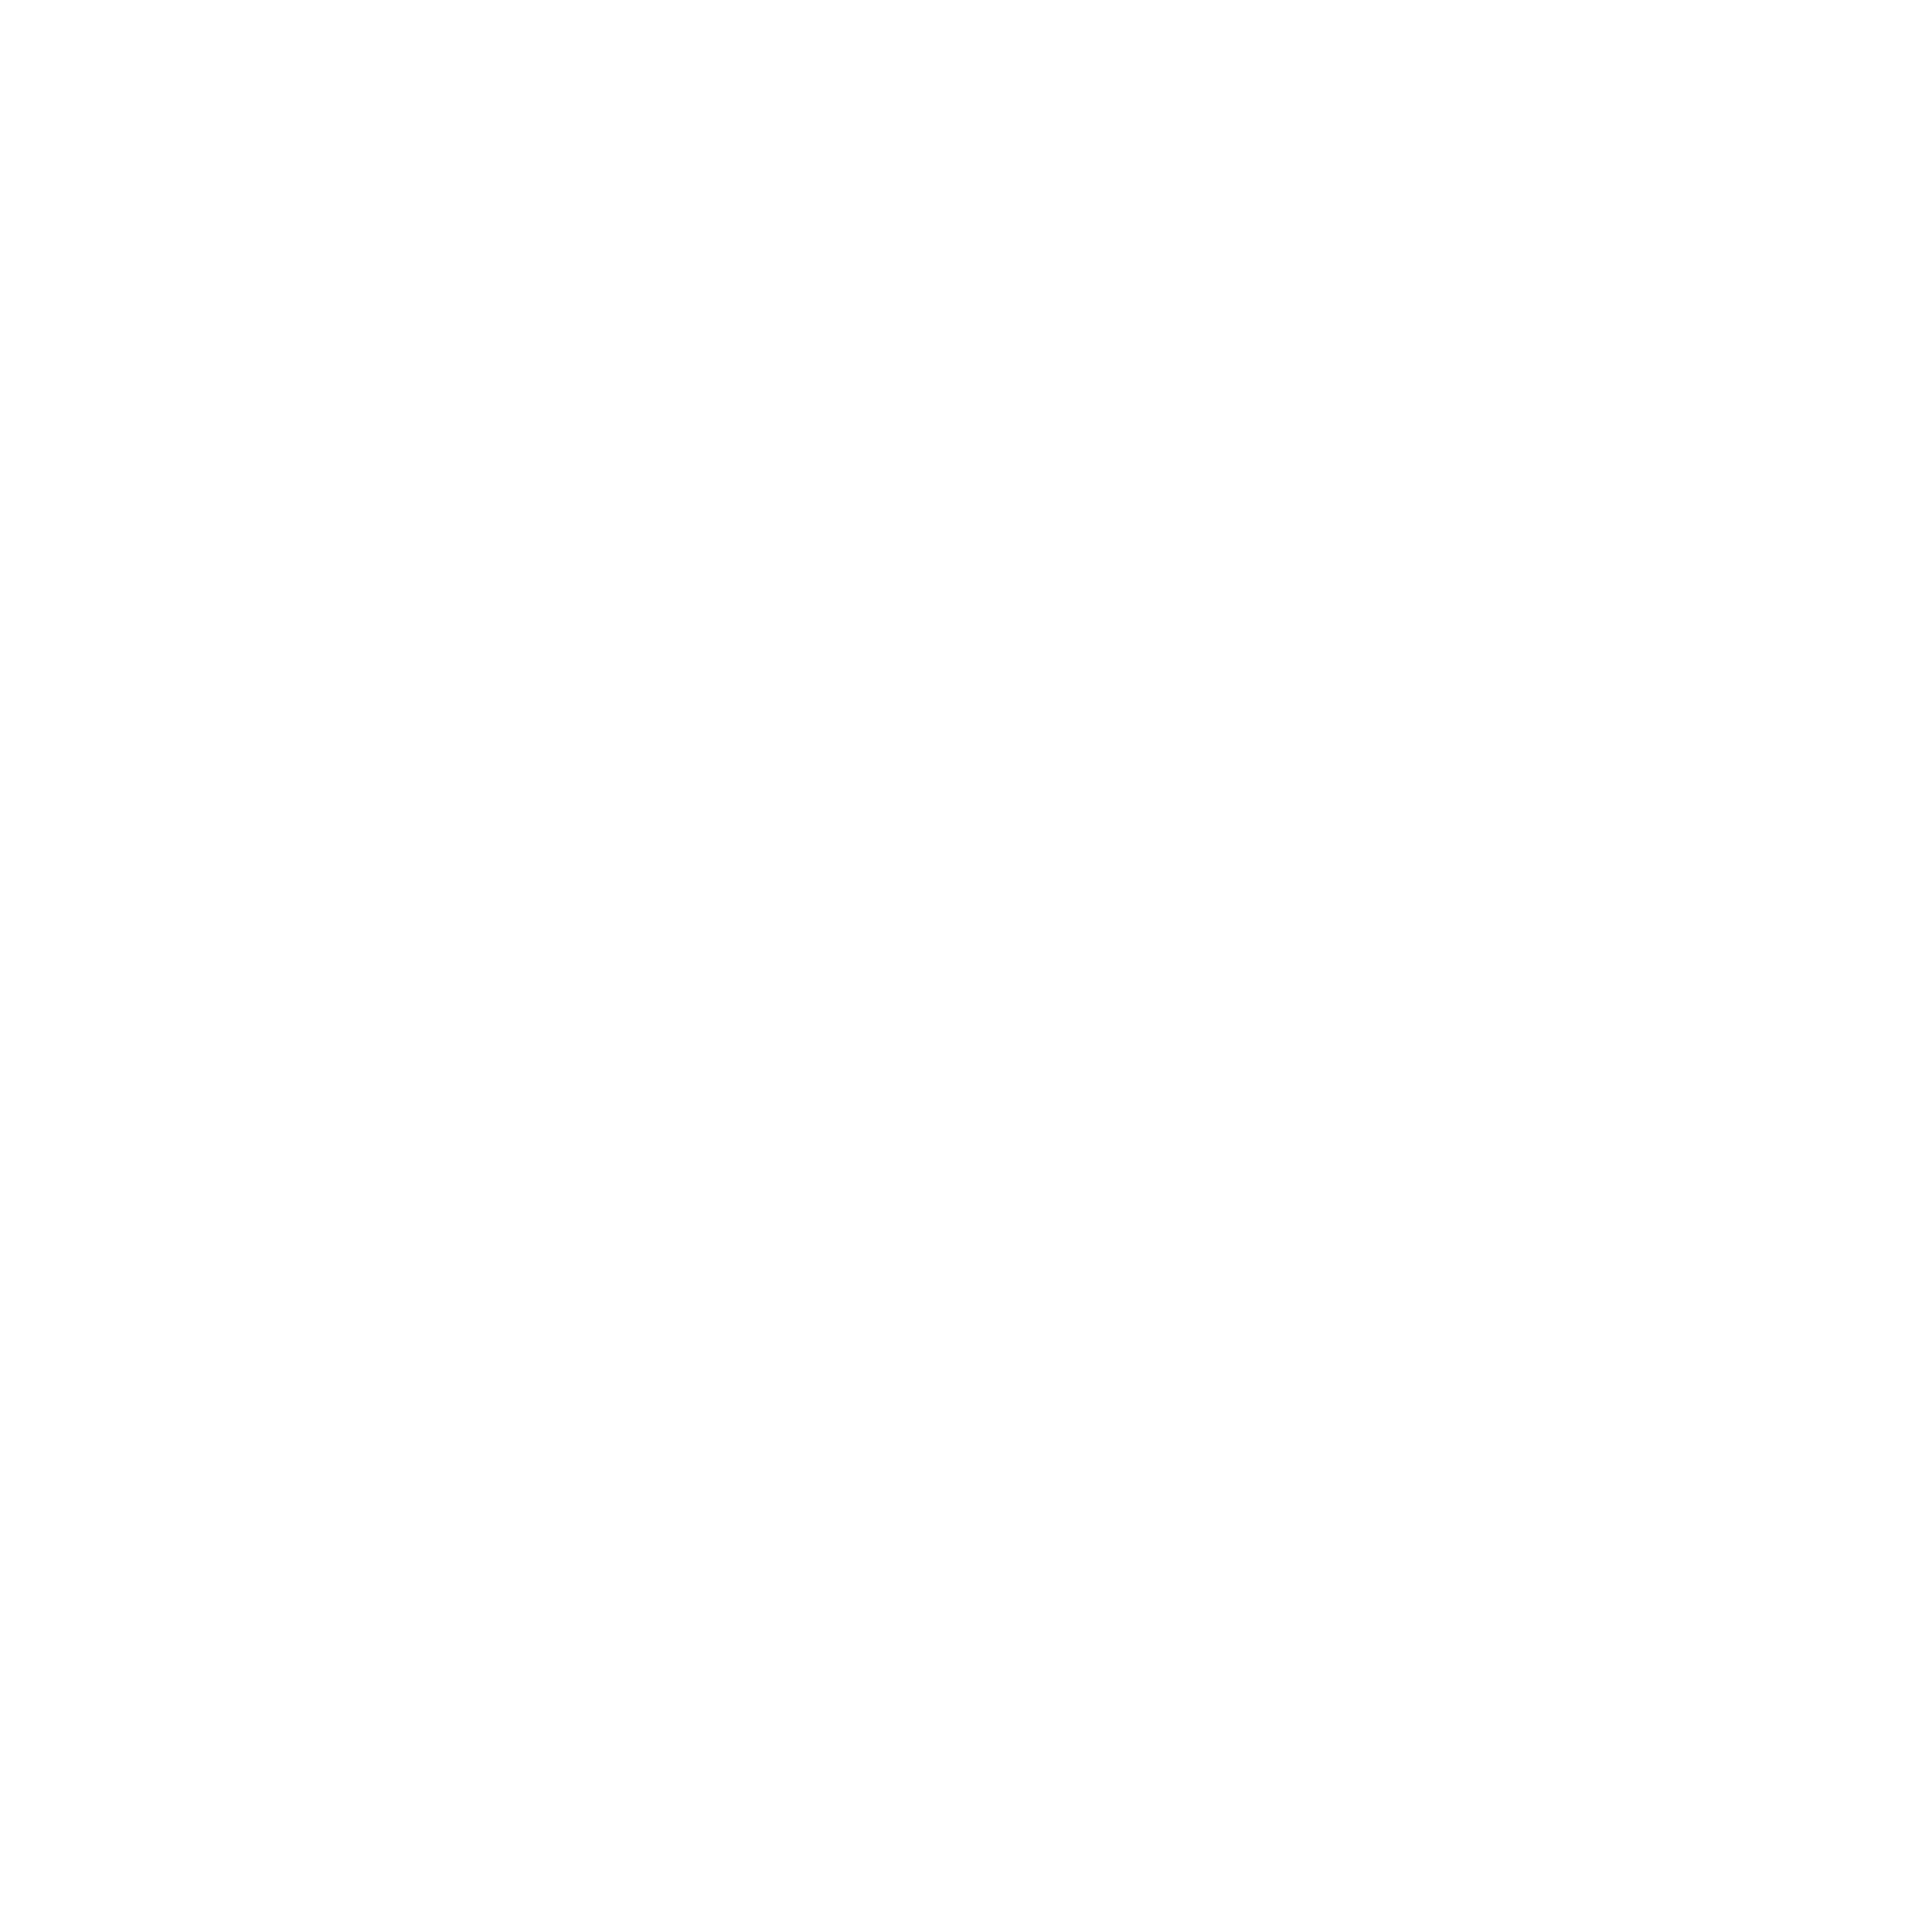 Kyle Builds